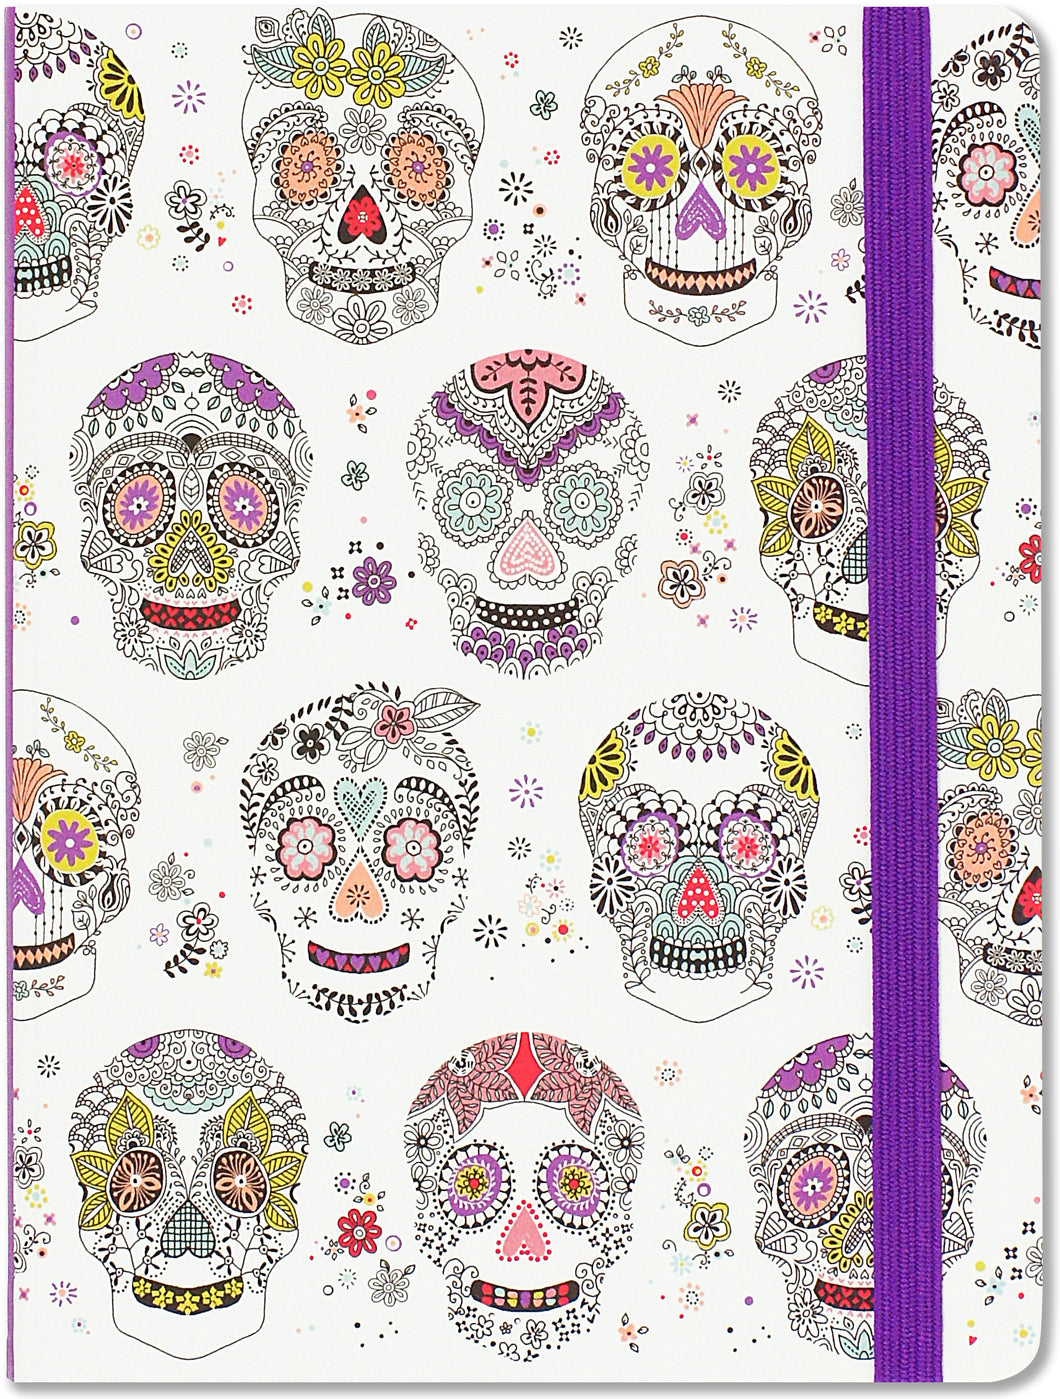 Peter Pauper Press Sugar Skulls Journal